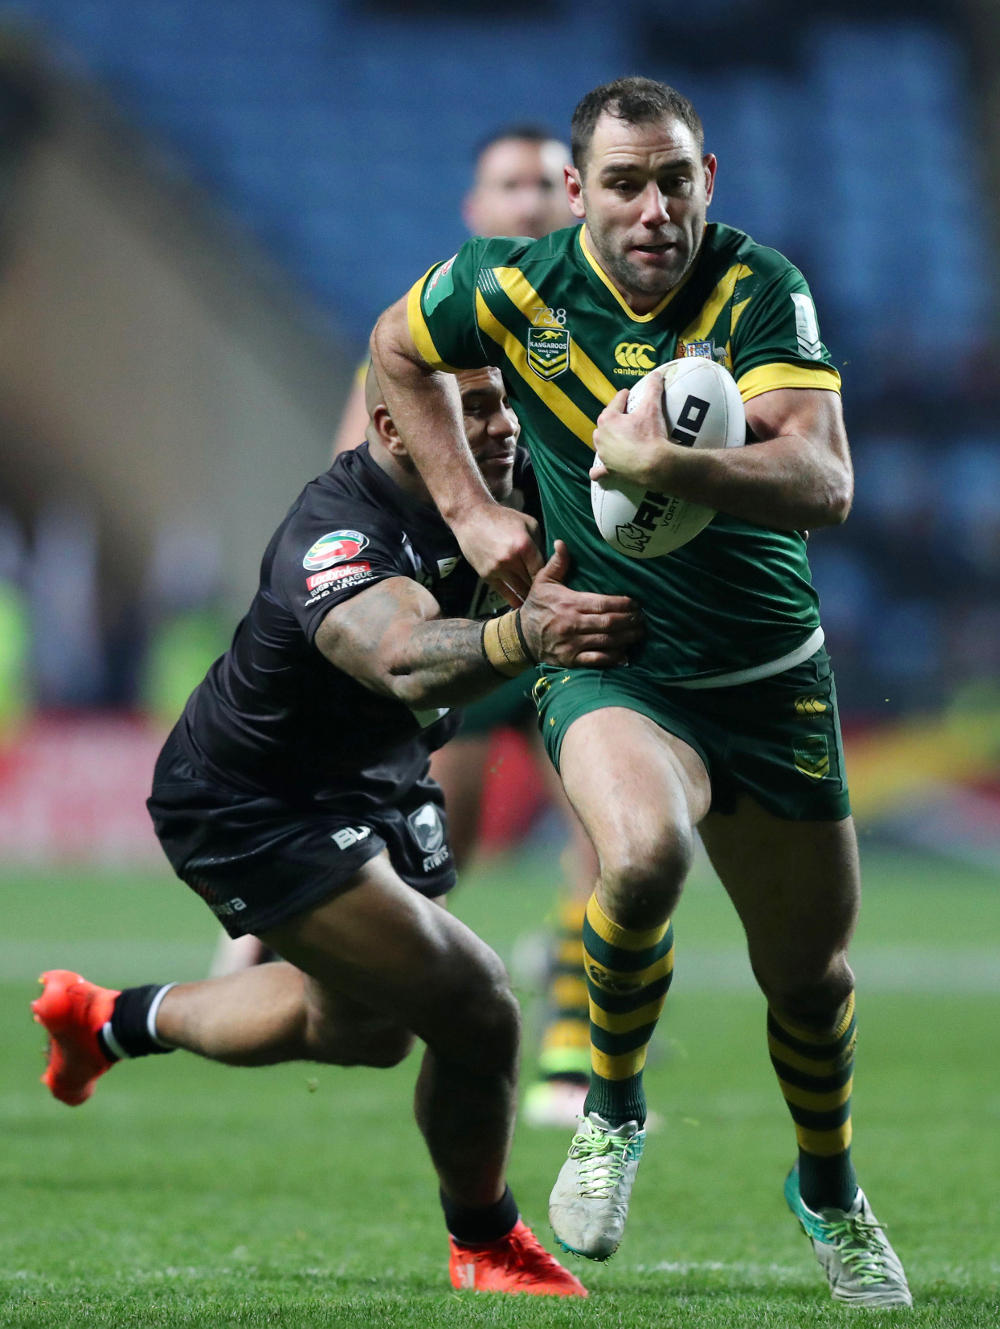 cameron-smith-australia-kangaroos-rugby-league-four-nations-2016-tall